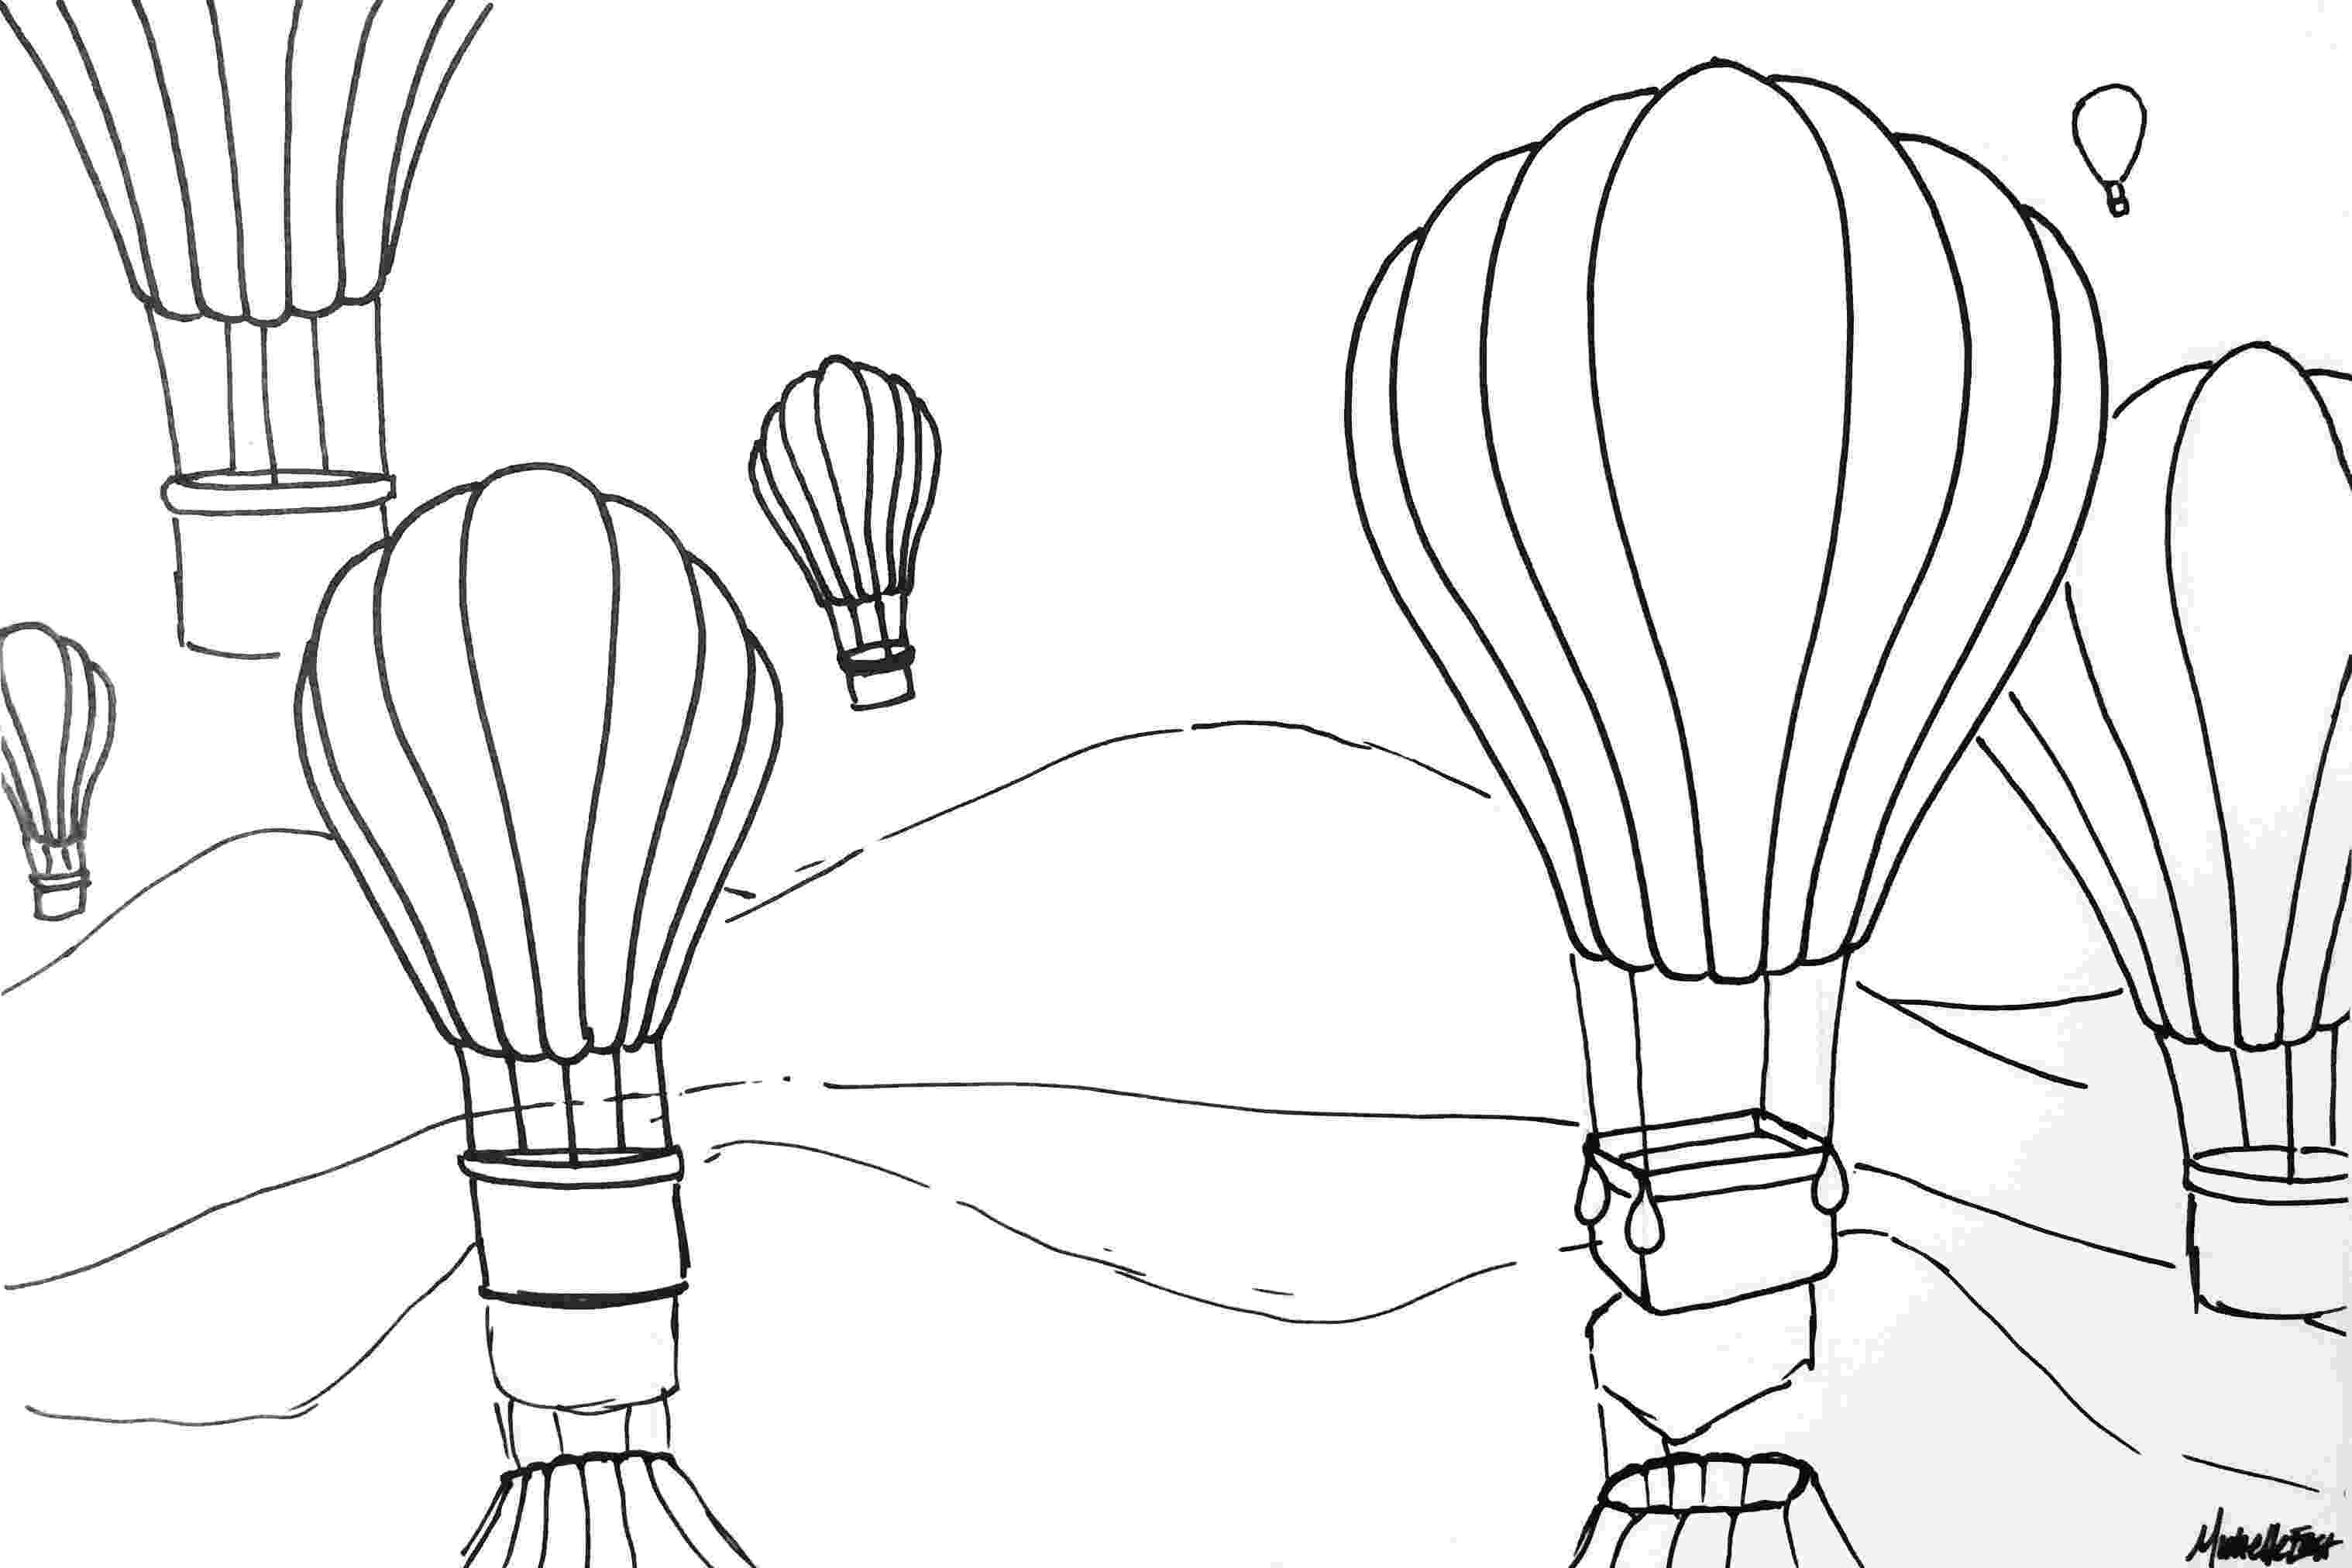 balloon sketch balloon sketch stock images royalty free images vectors sketch balloon 1 1